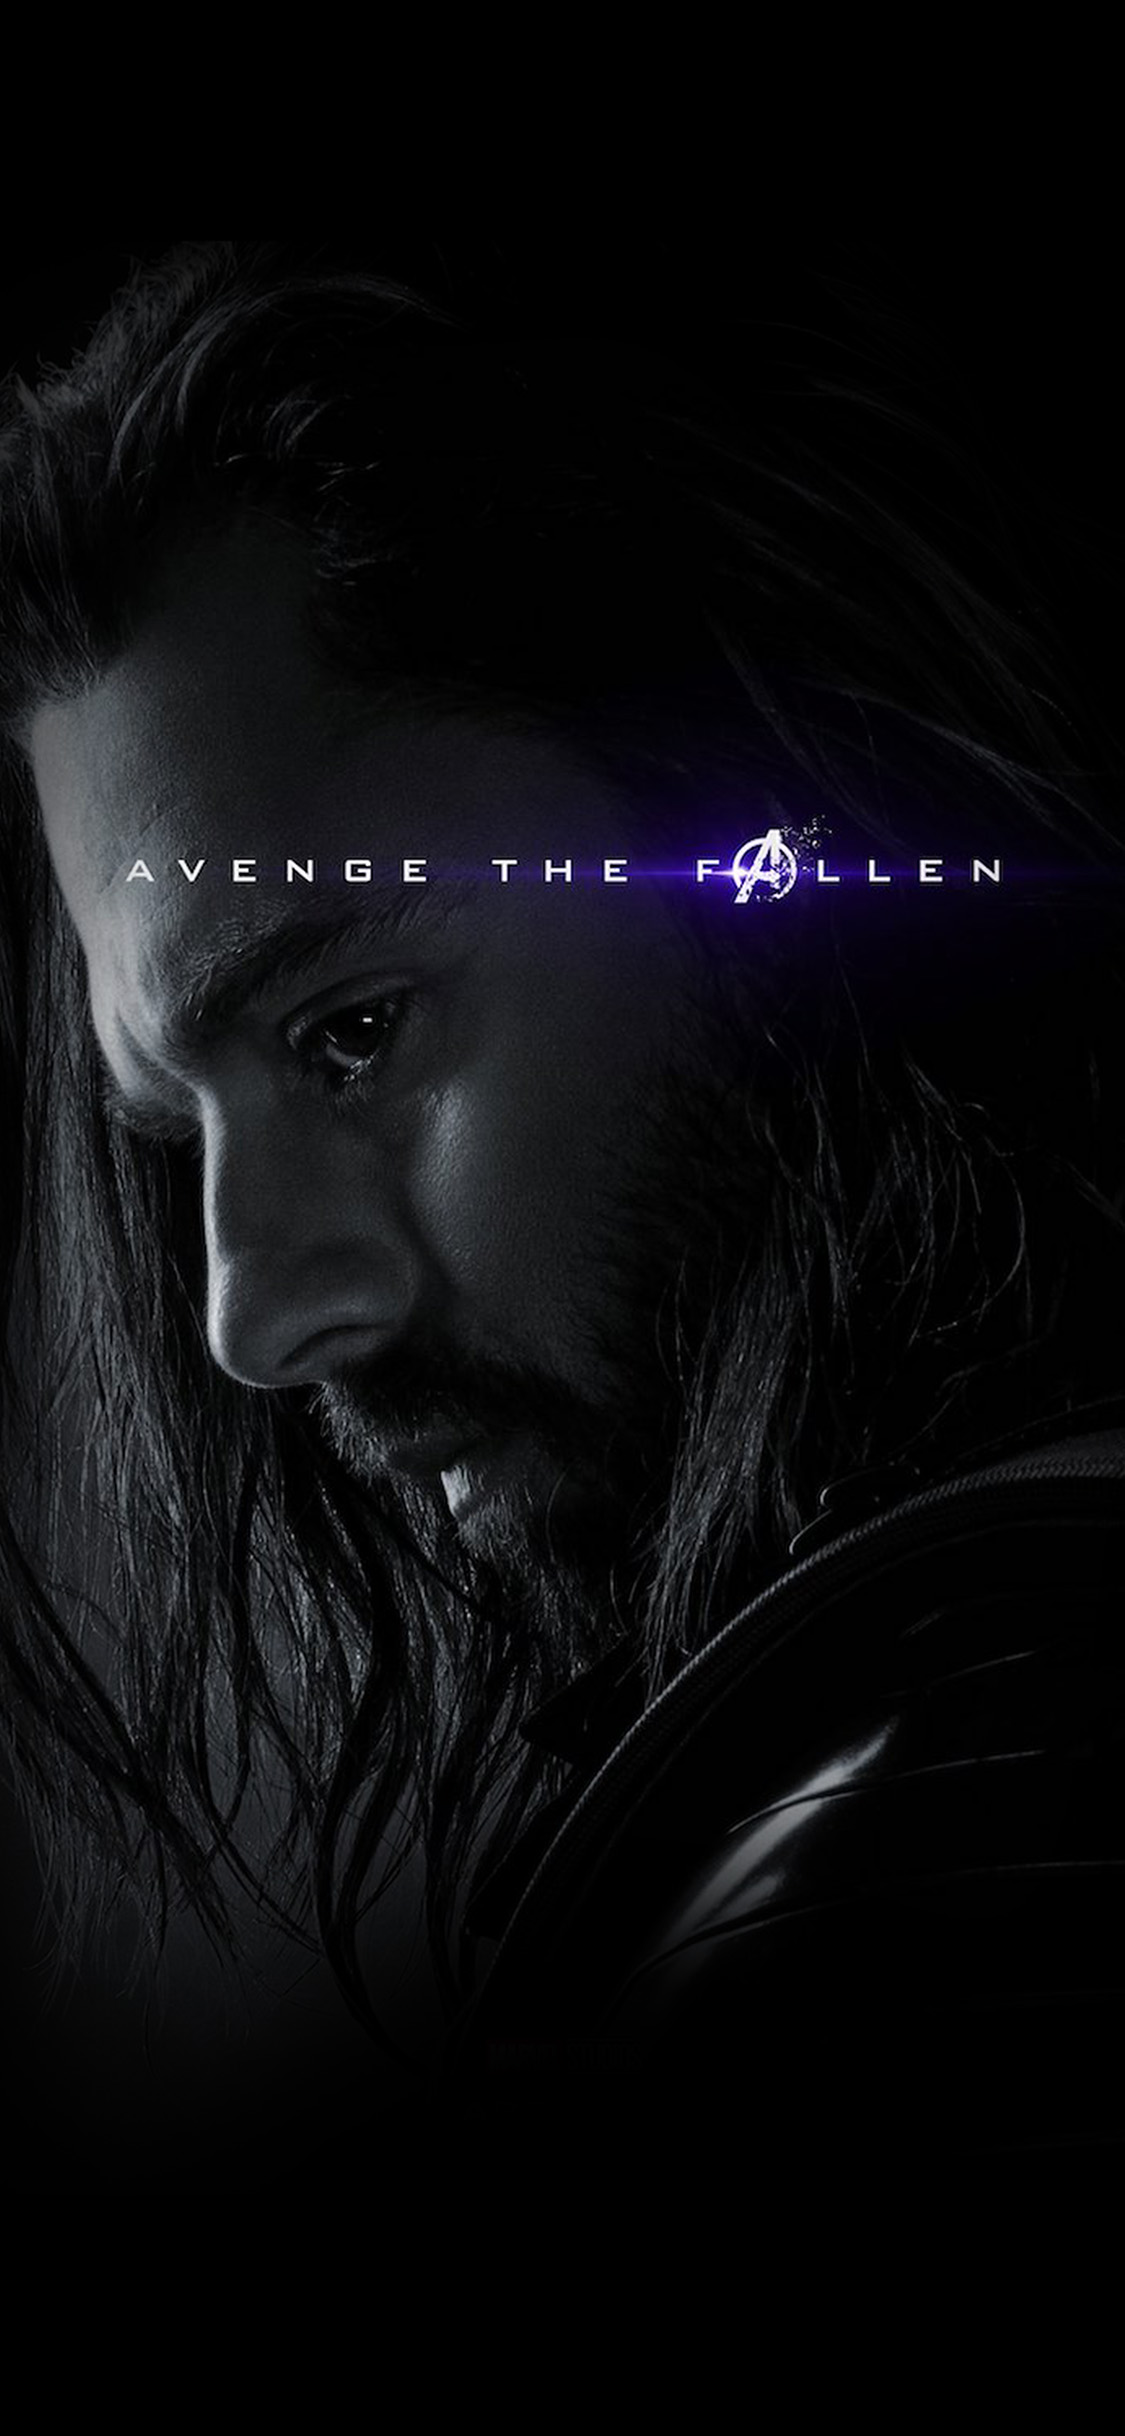 Iphonexpaperscom Iphone X Wallpaper Bi58 Avengers Endgame Hero